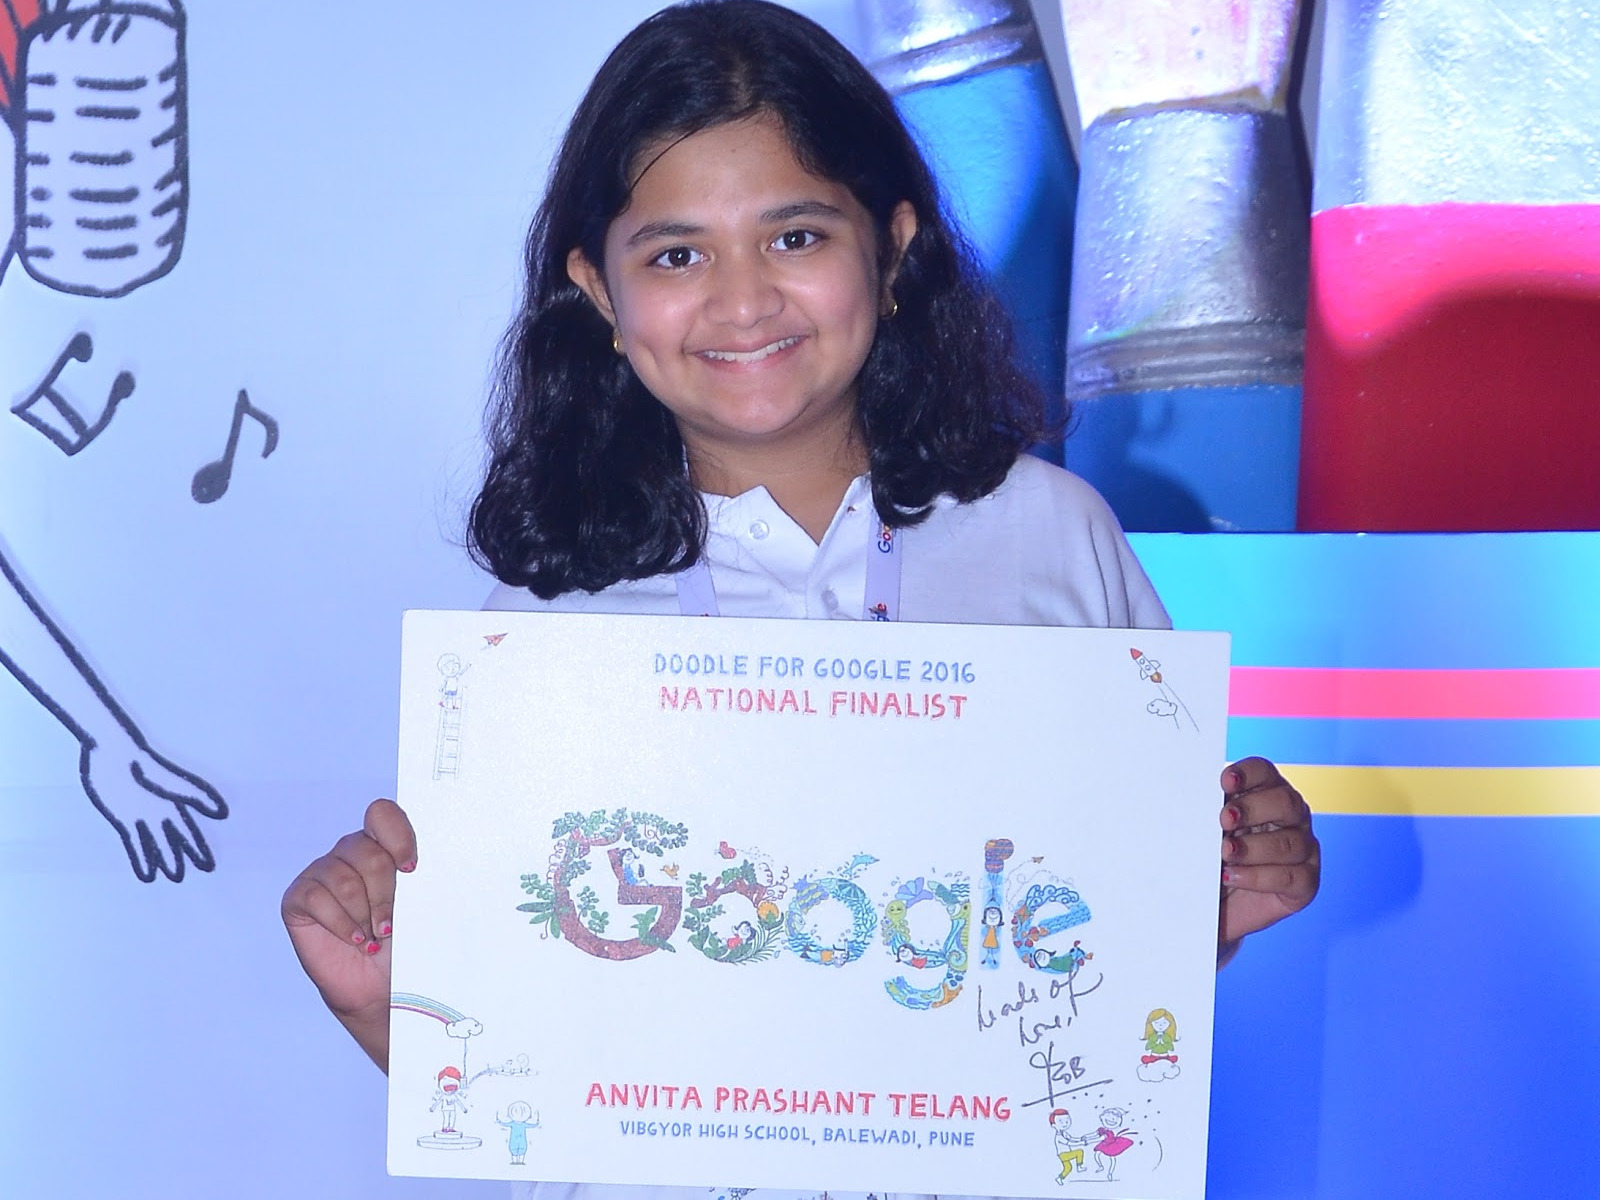 Doodle 4 Google, National winnner, Anvita Telang, Pune, 'If I could teach anyone anything, it would be', National Doodle 4 Google Winner, Google Doodle Winner Anvita Telang, Children's Day Google Doodle  Winner, Pune Girl Anvita Telang, Doodle 4 Google co